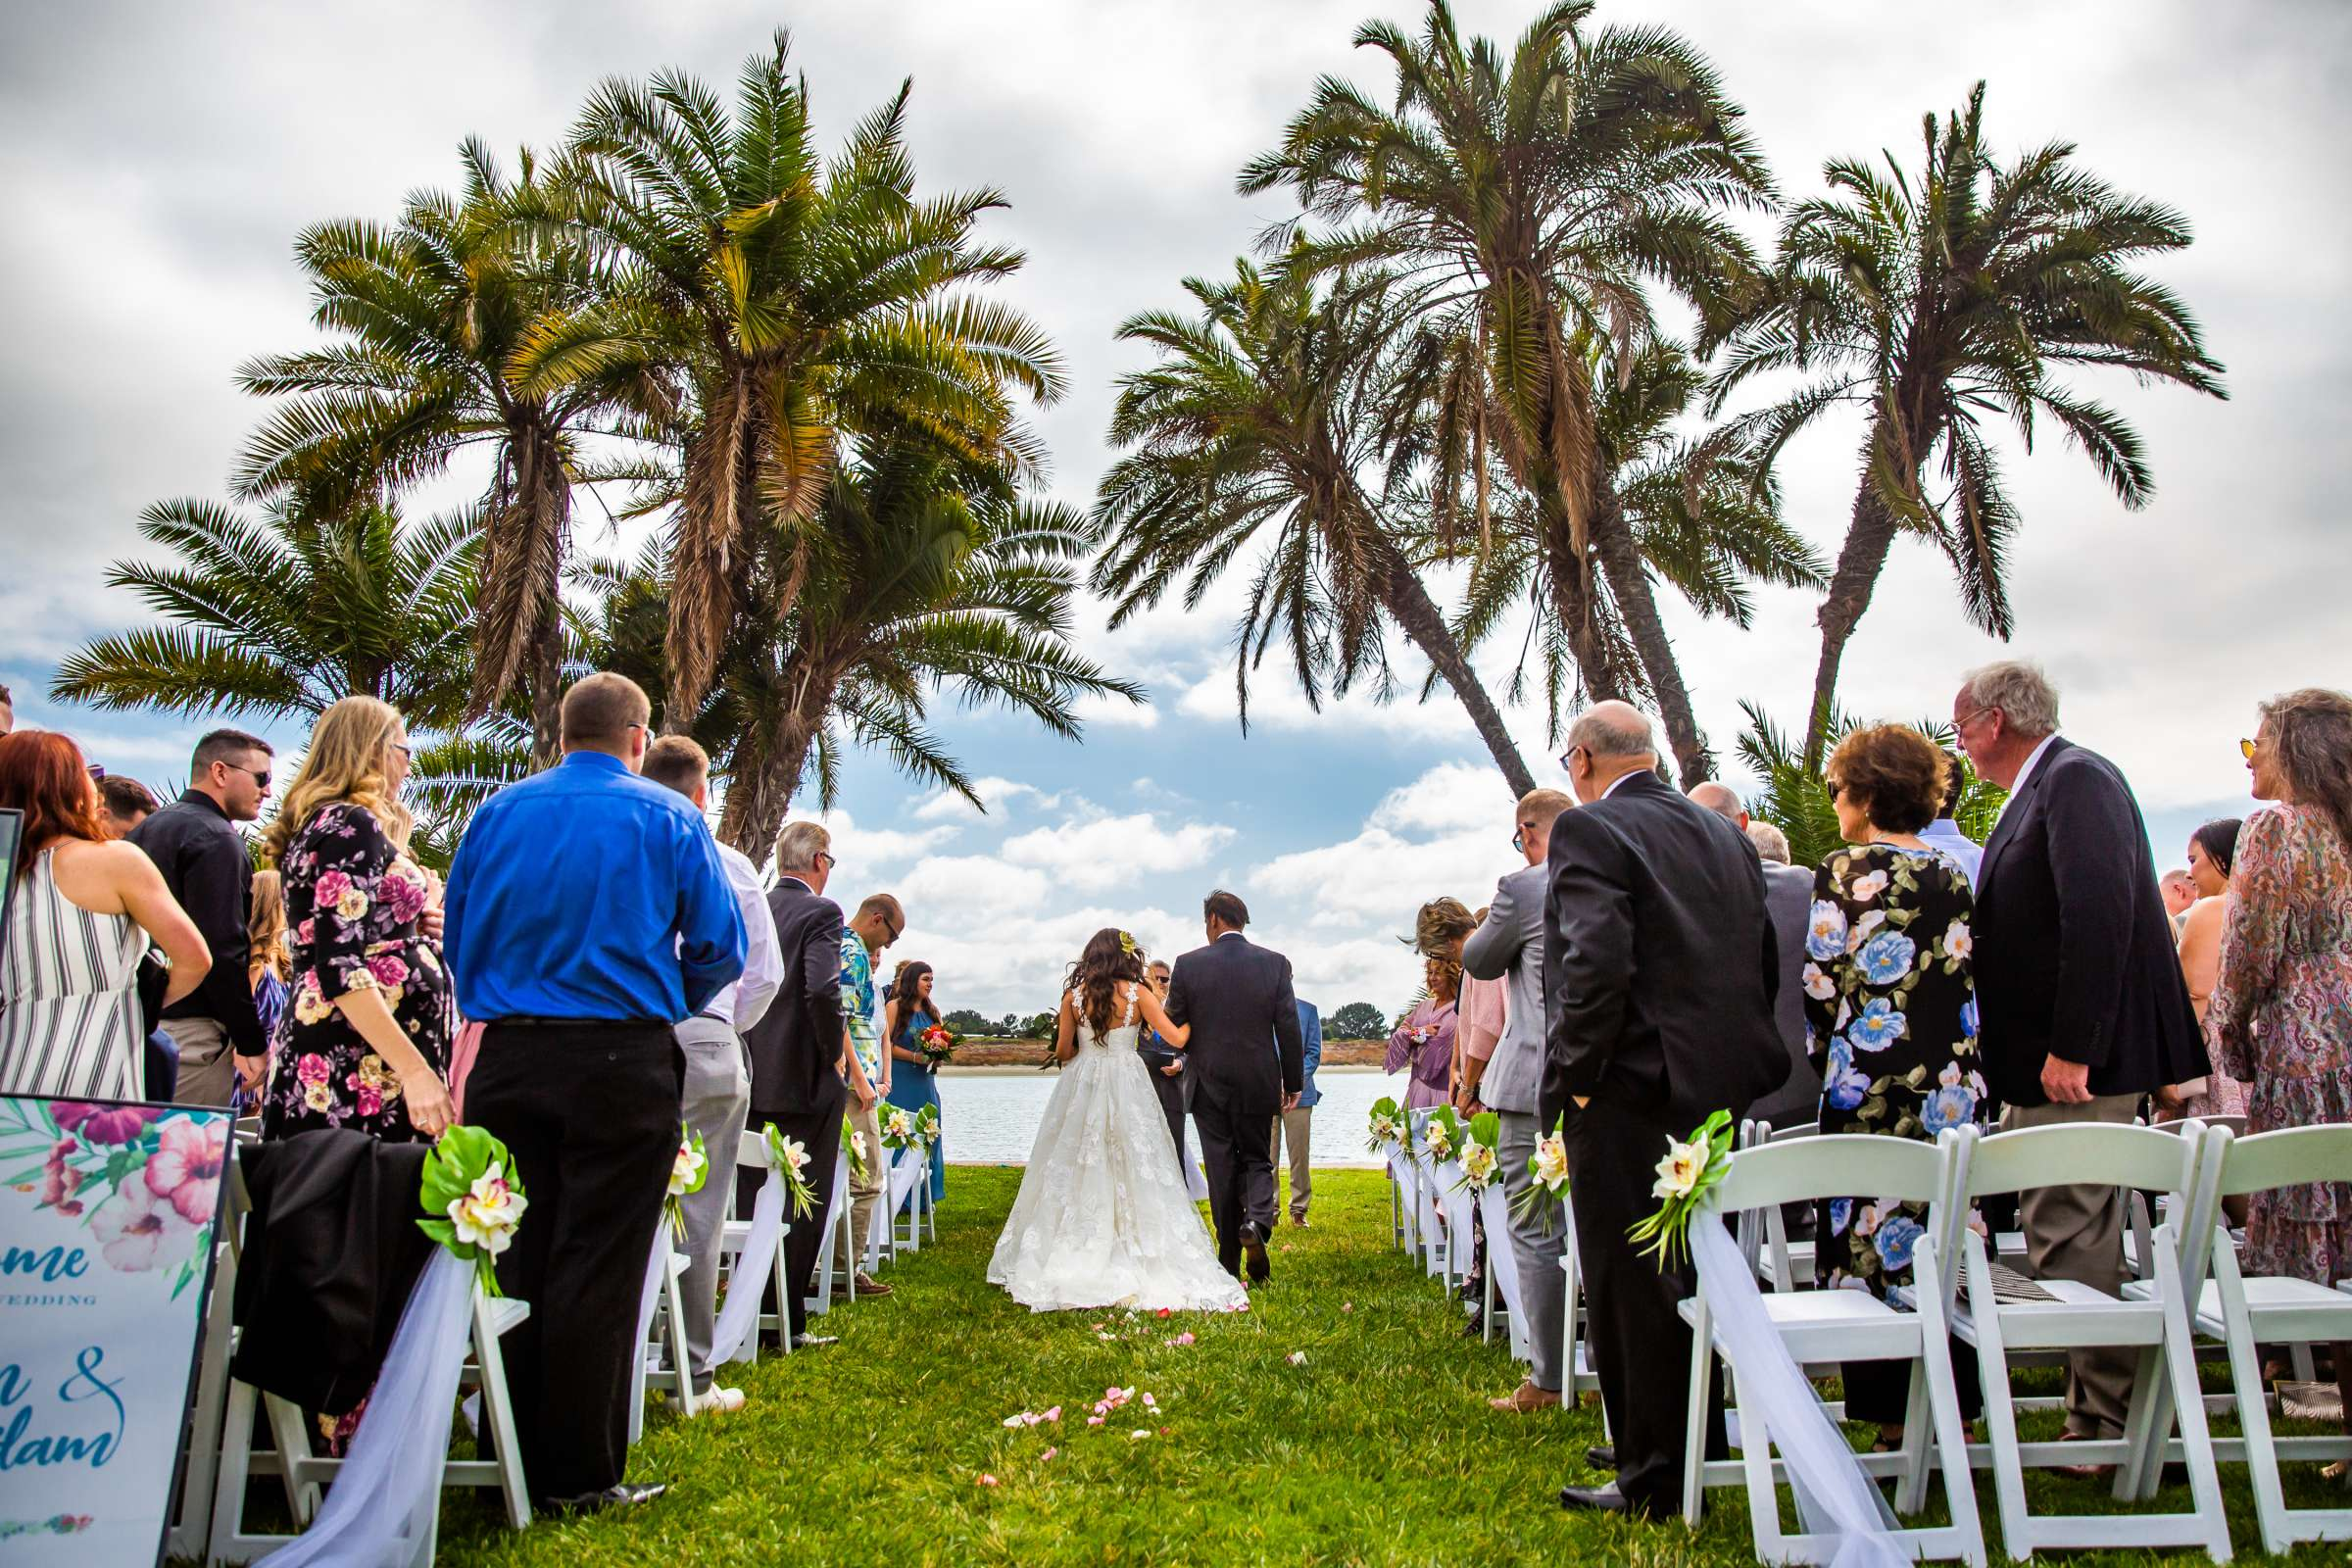 San Diego Mission Bay Resort Wedding coordinated by Cafe Au Love, Lauren and Adam Wedding Photo #61 by True Photography